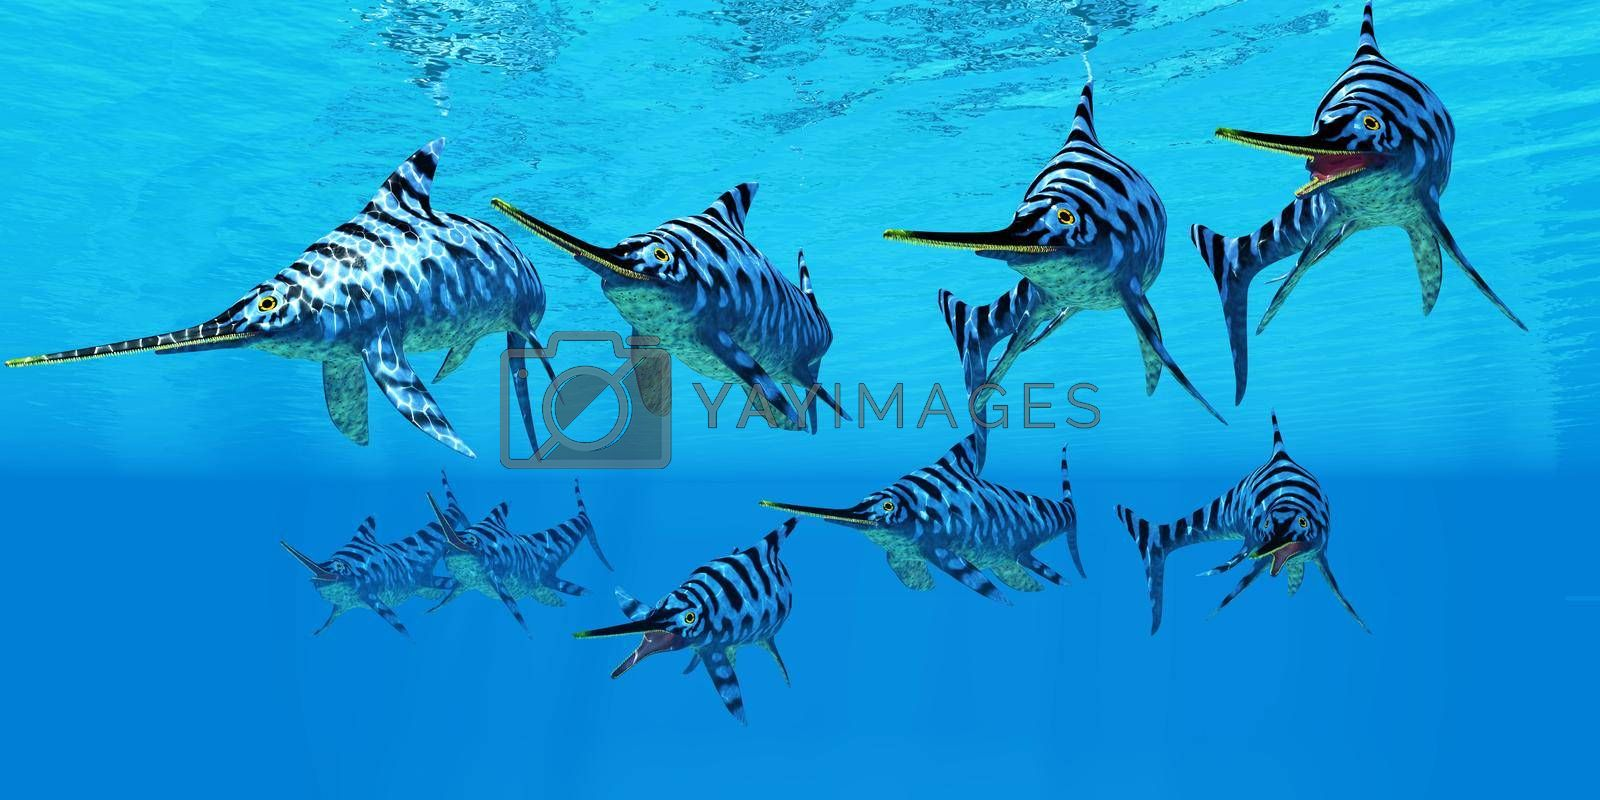 A Eurhinosaurus marine reptile pod swim together to hunt for their prey during the Jurassic Period.